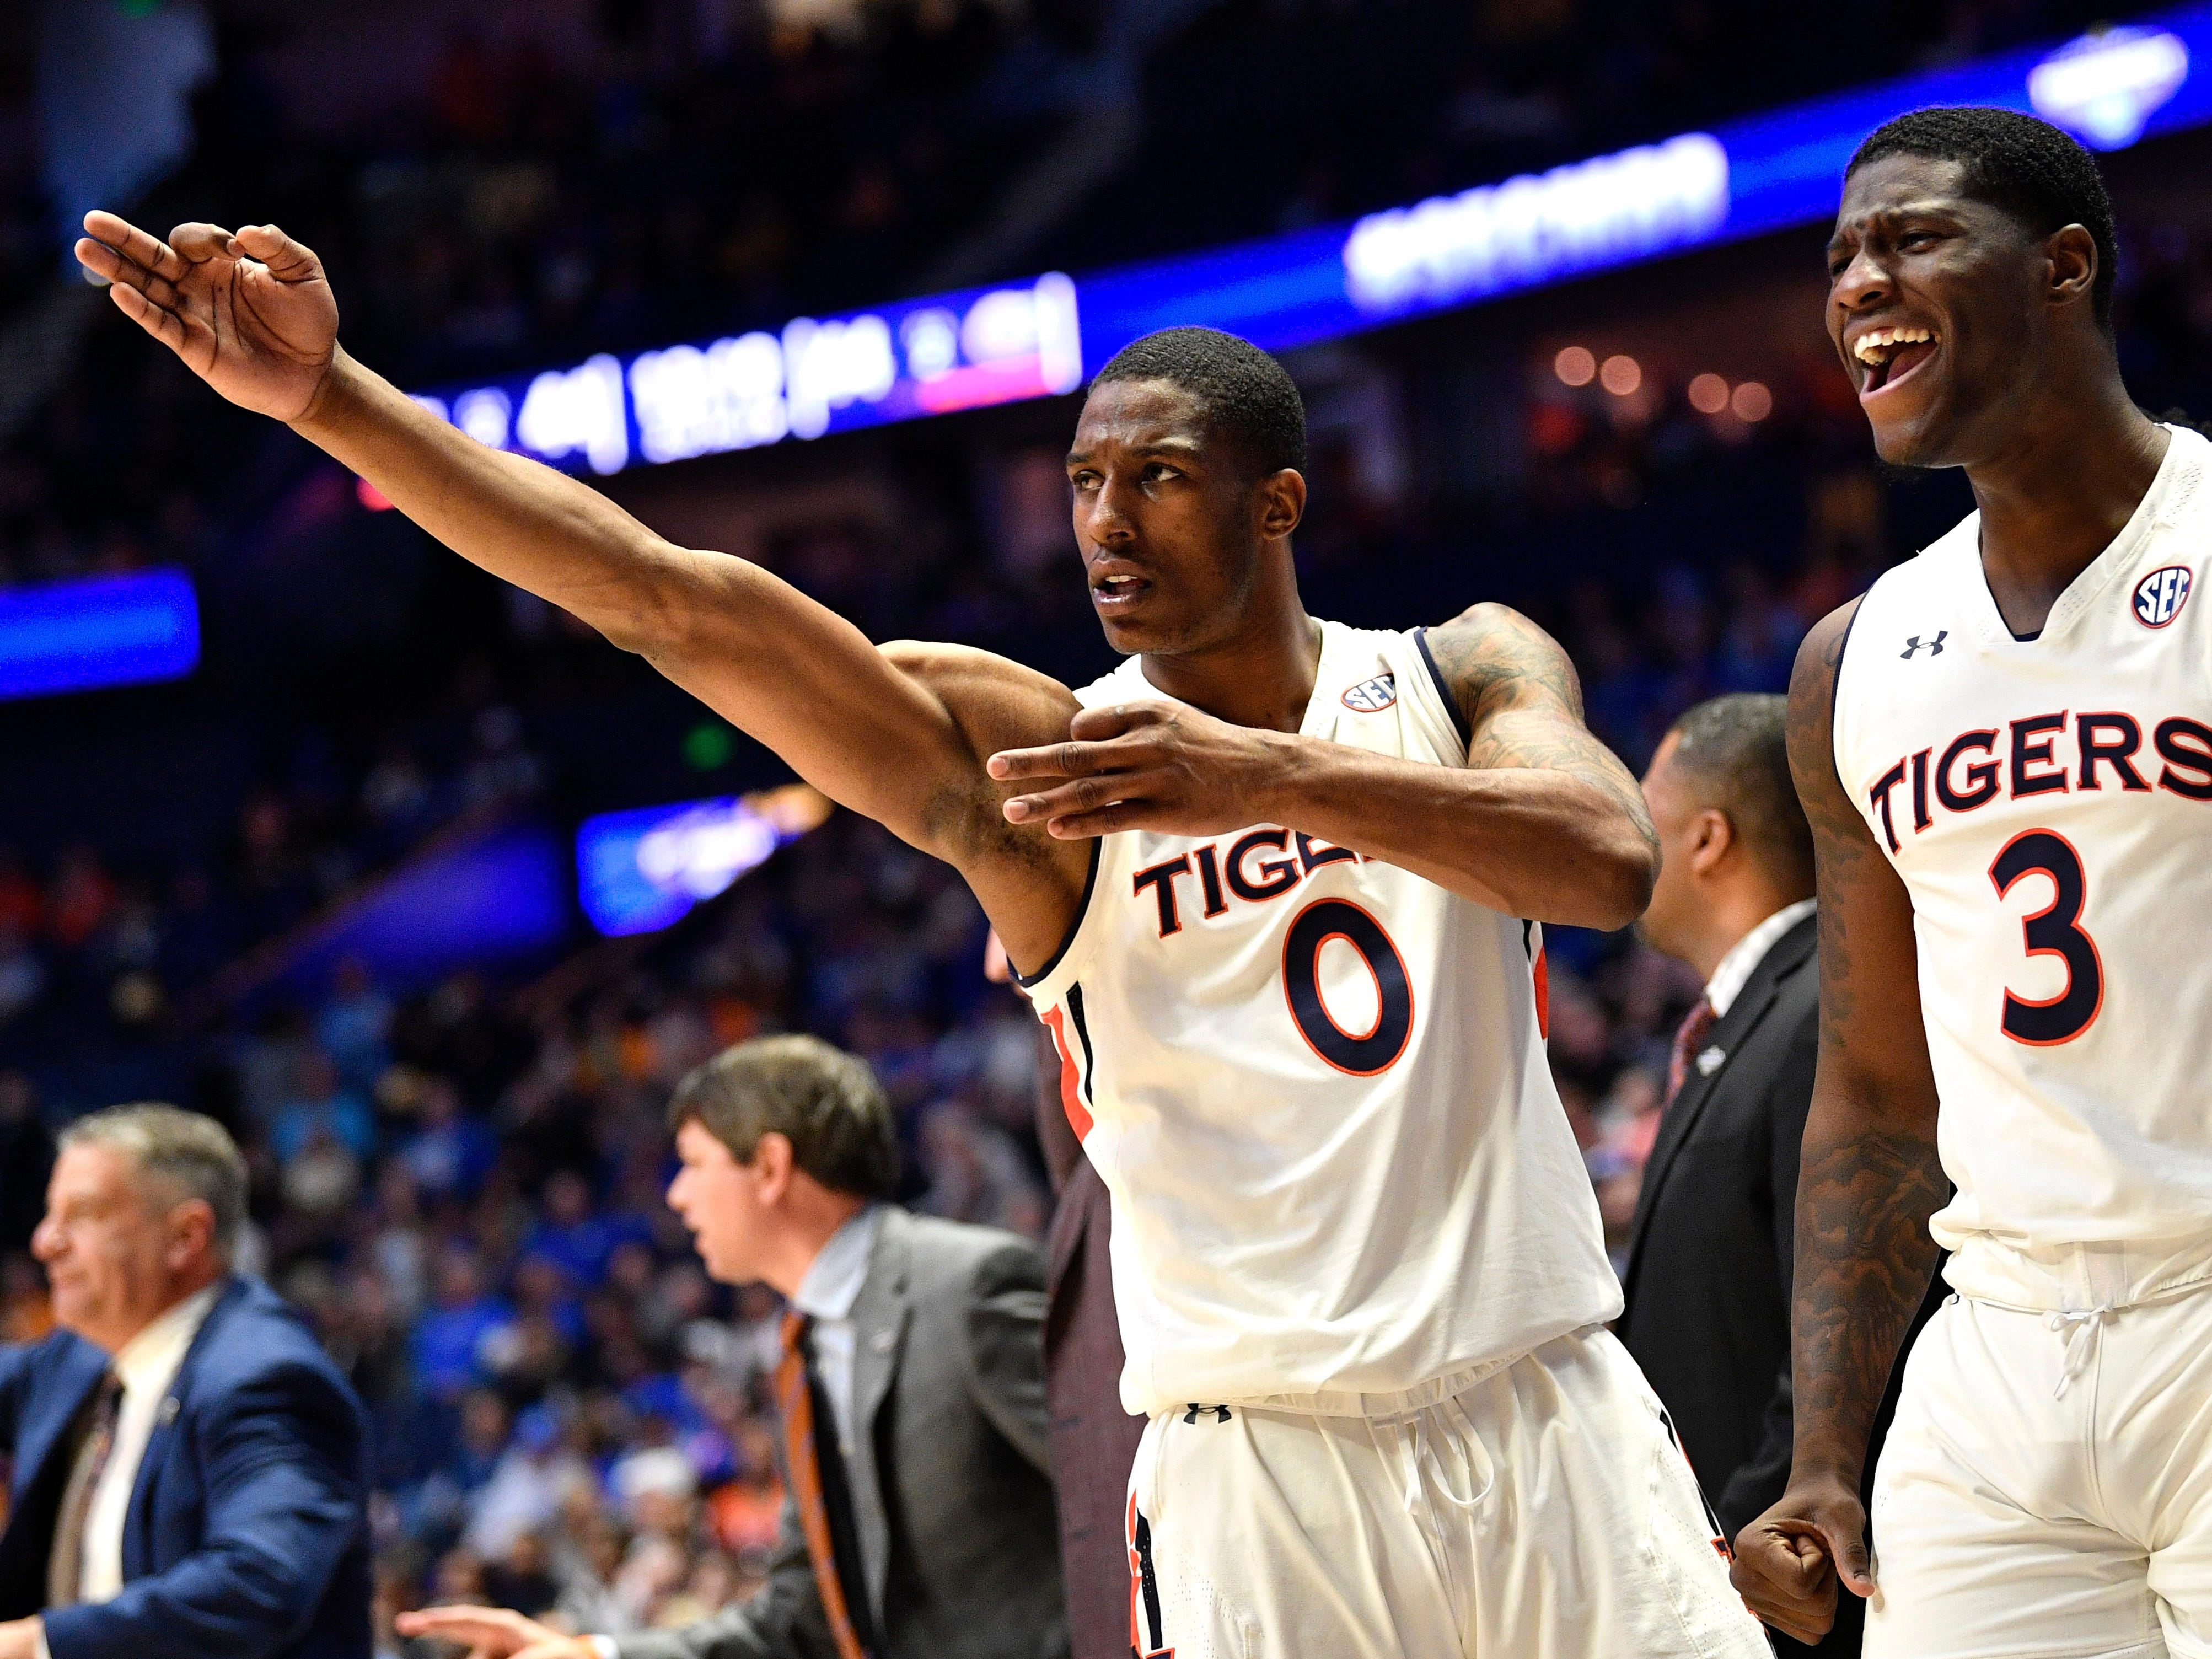 Auburn forwards Horace Spencer (0) and Danjel Purifoy (3) celebrate during the second half of the SEC Men's Basketball Tournament game against Florida at Bridgestone Arena in Nashville, Tenn., Saturday, March 16, 2019.